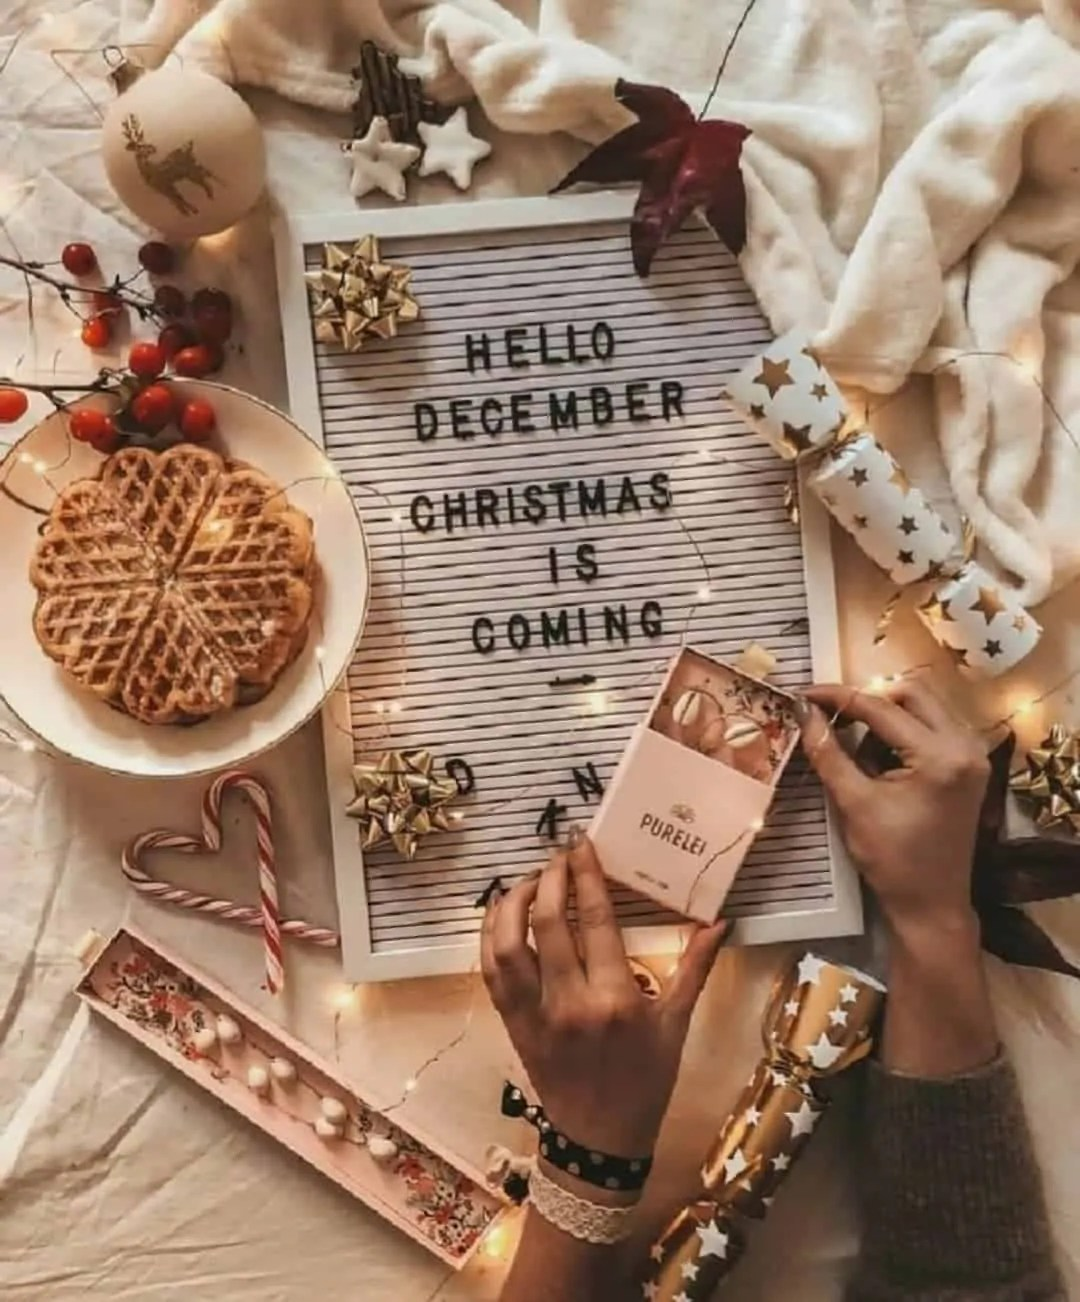 30 Christmas Aesthetic Images you must see: WARNING you will get Christmas mood INSTANTLY! 183